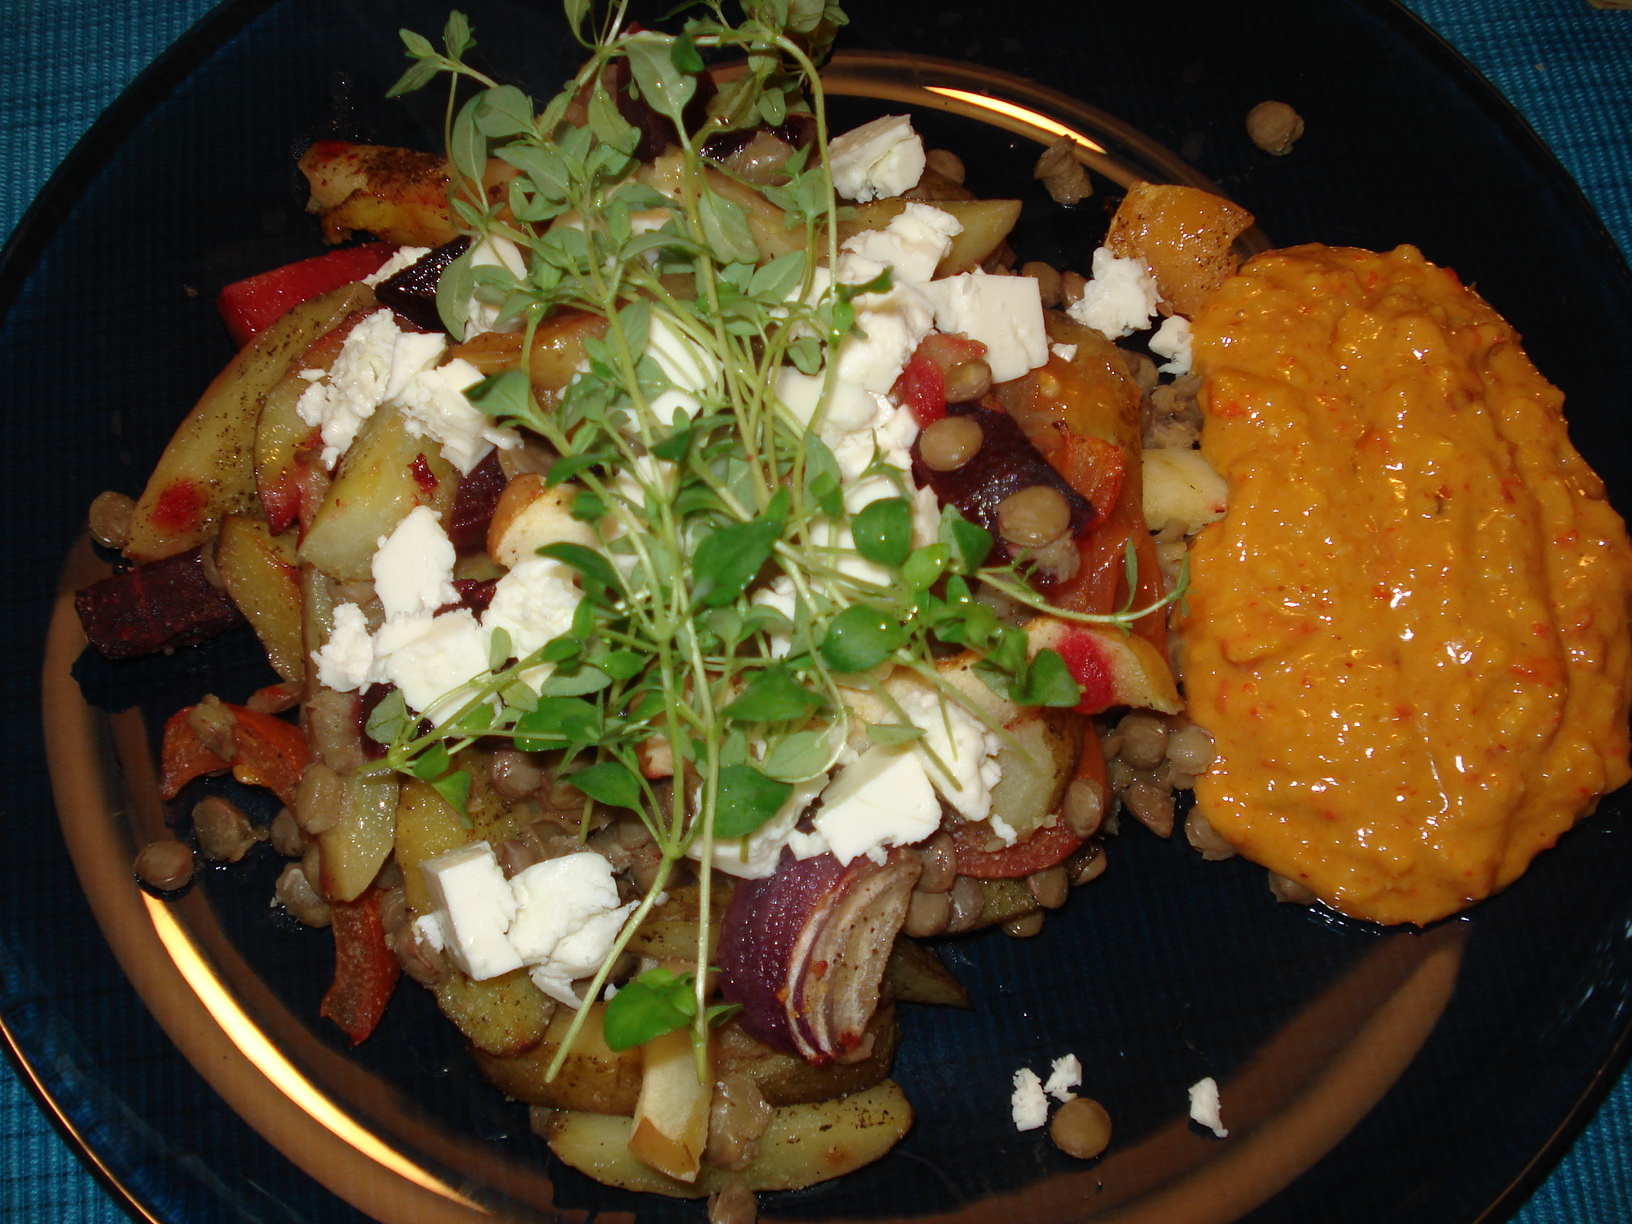 Roasted root vegetables with feta cheese and Salsa Romesco